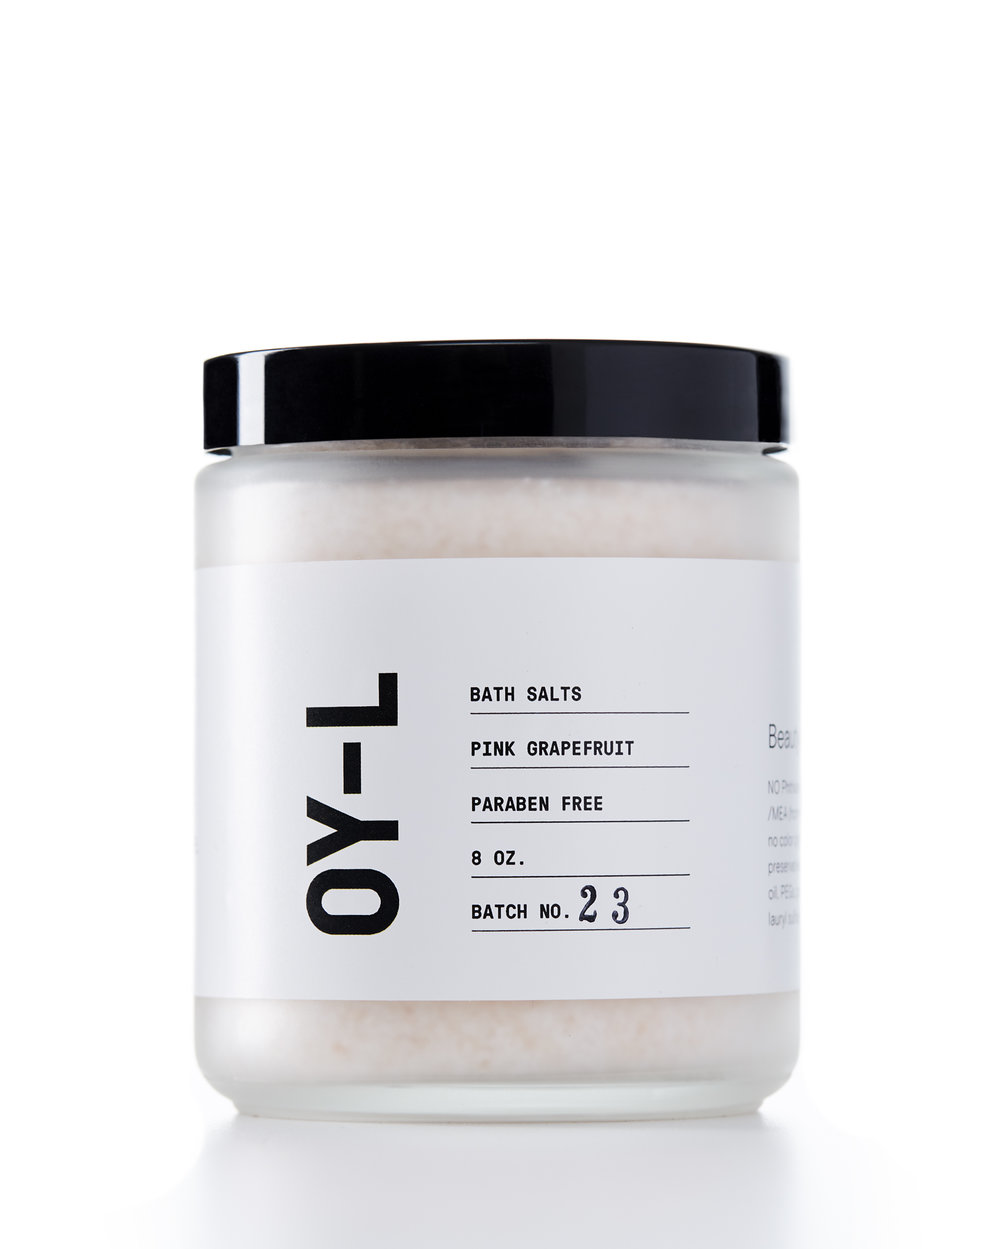 OY-L Pink Grapefruit Bath Salts.jpg